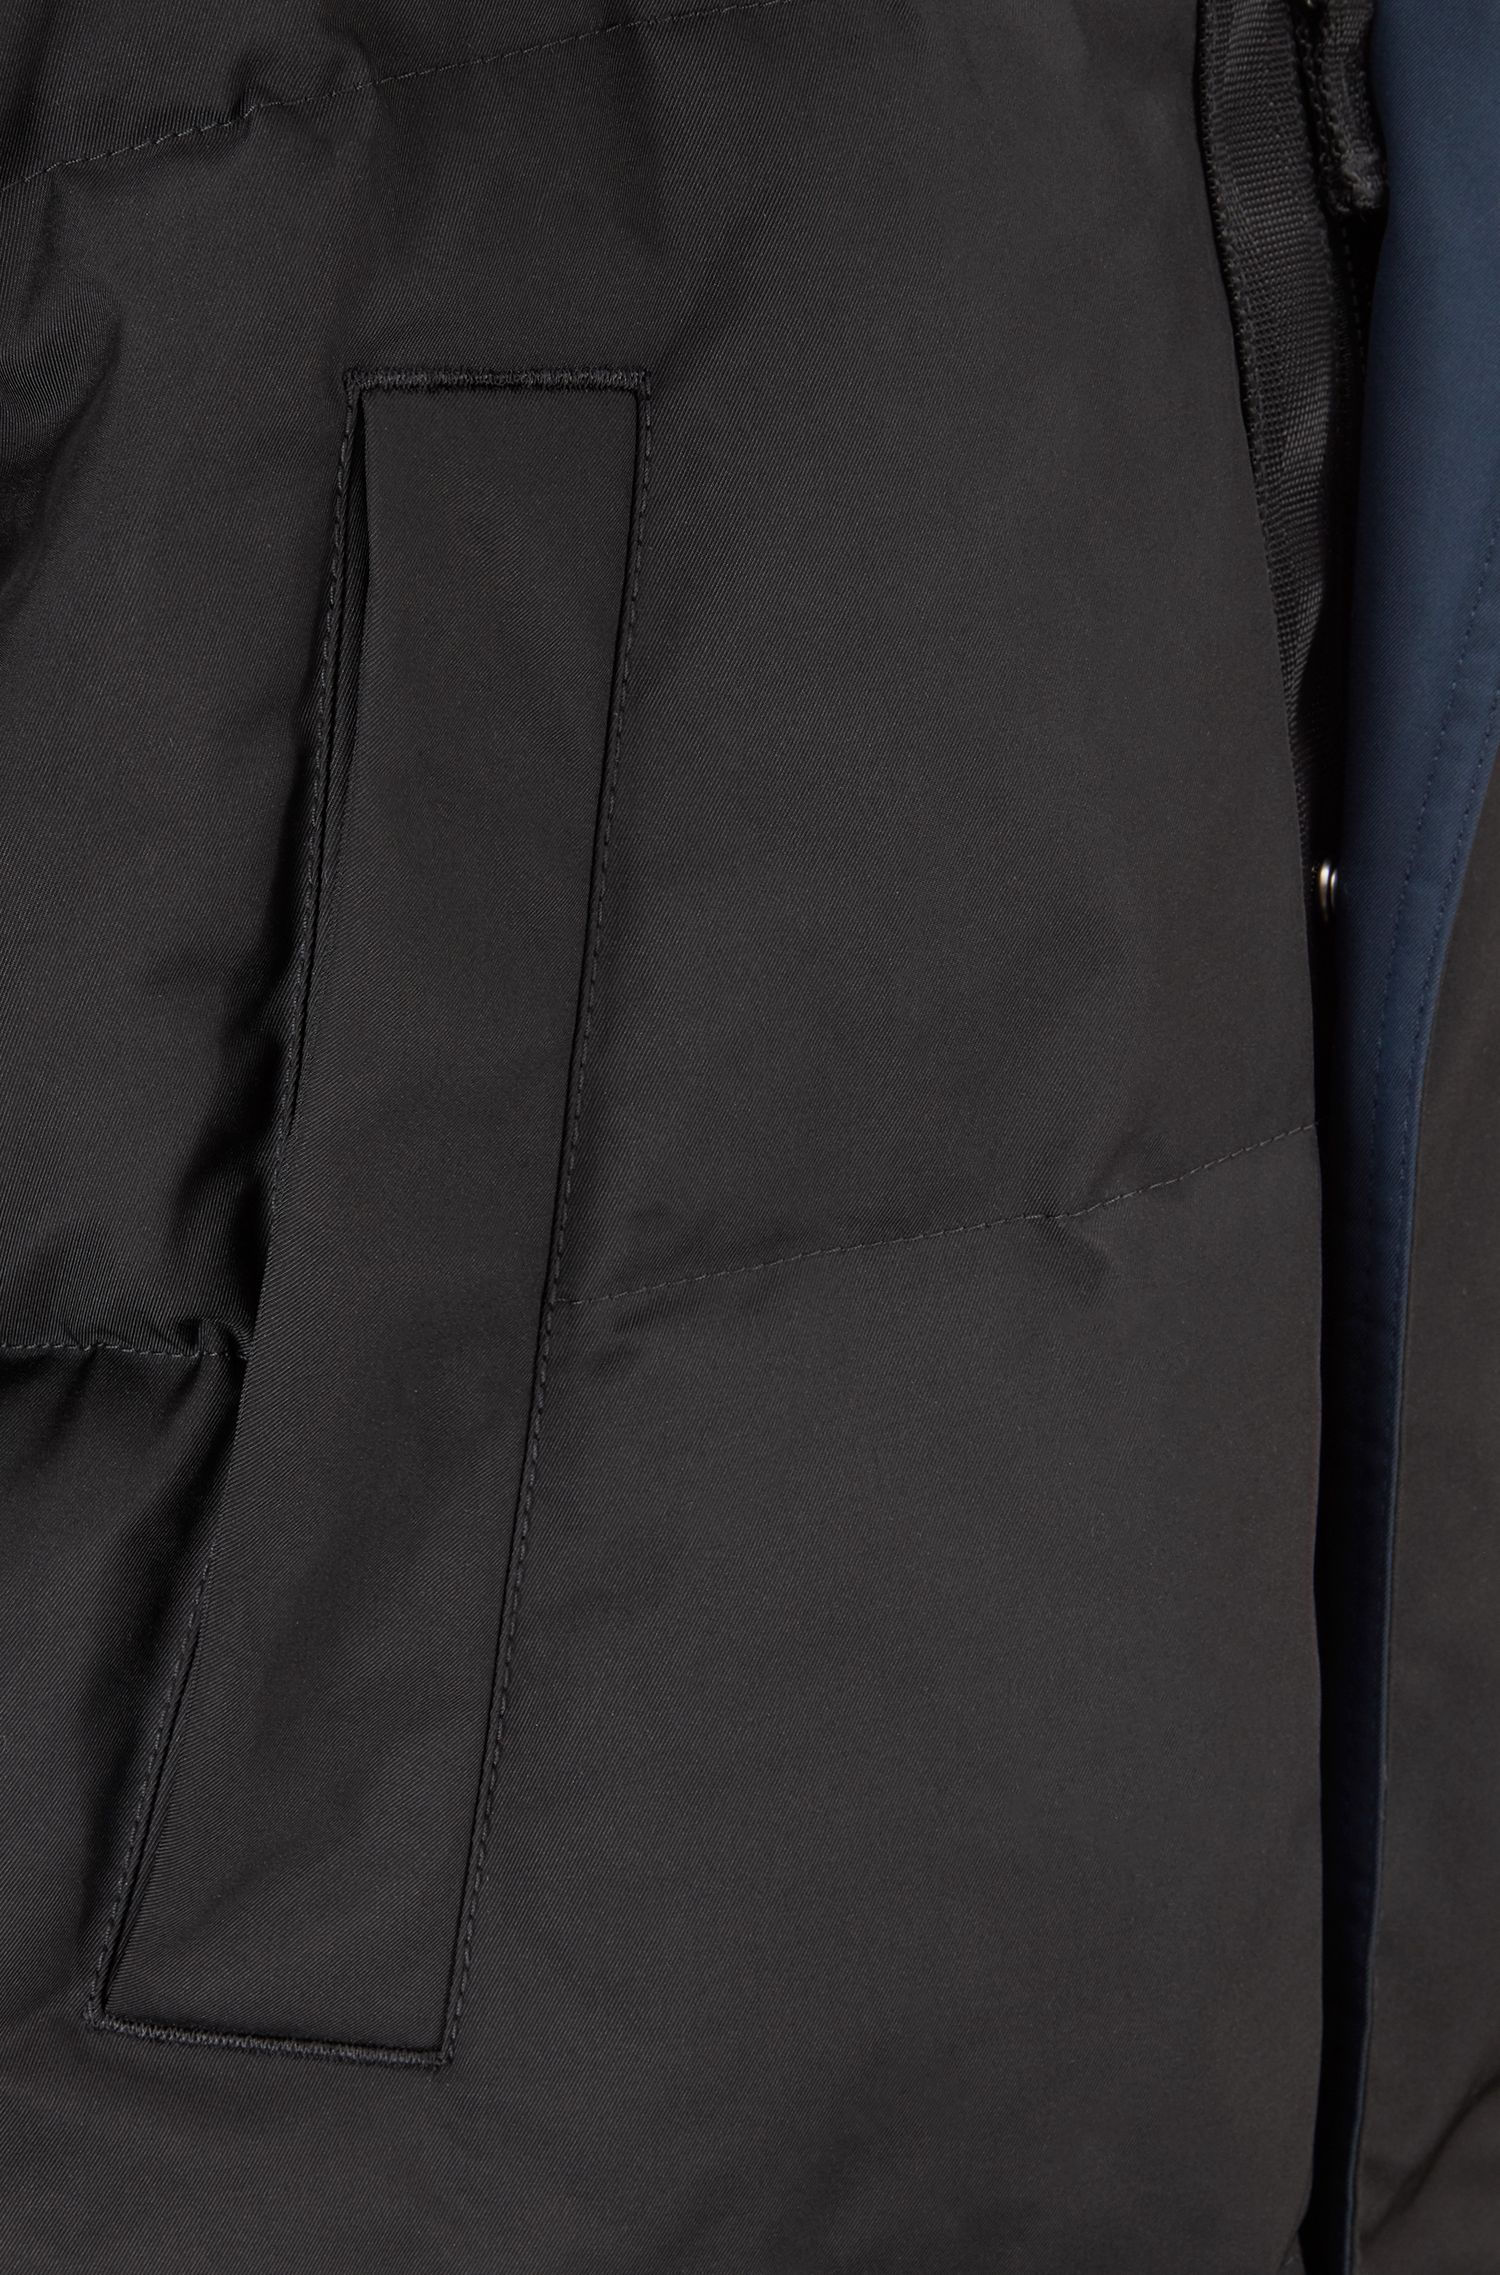 Down-filled jacket with water repellency and detachable hood, Black